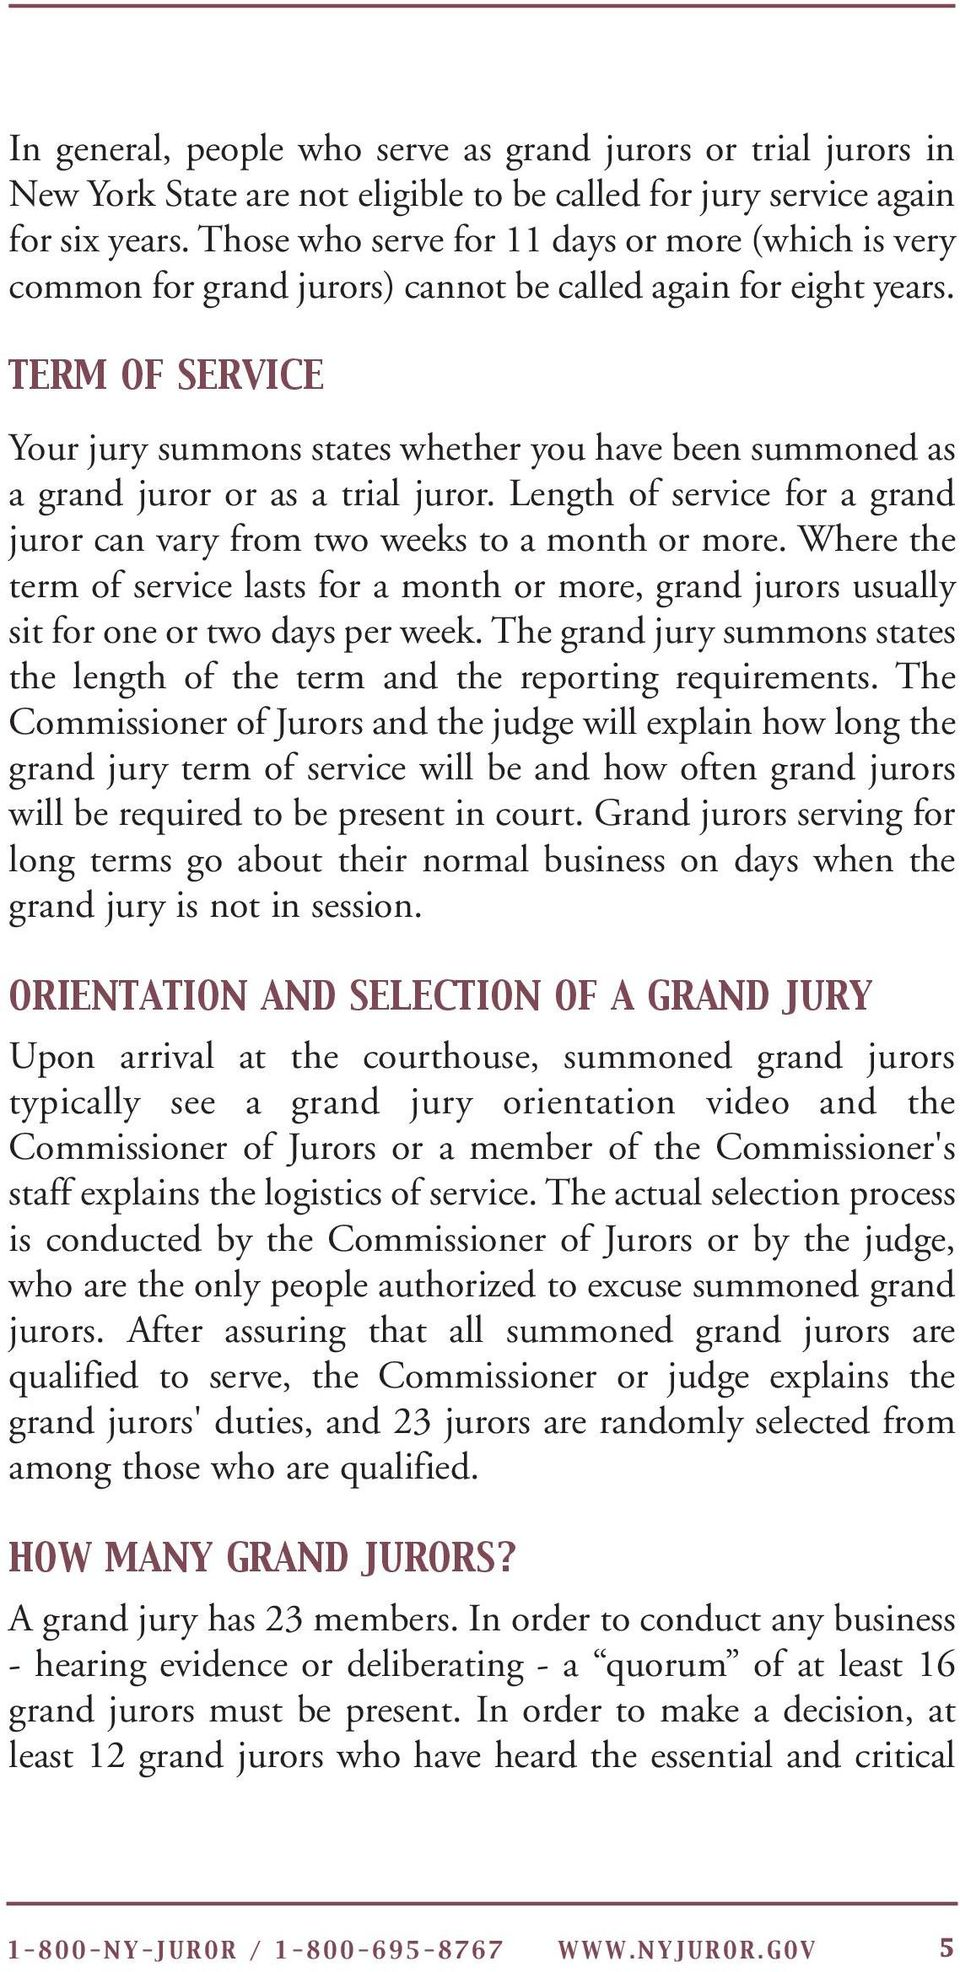 TERM OF SERVICE Your jury summons states whether you have been summoned as a grand juror or as a trial juror. Length of service for a grand juror can vary from two weeks to a month or more.